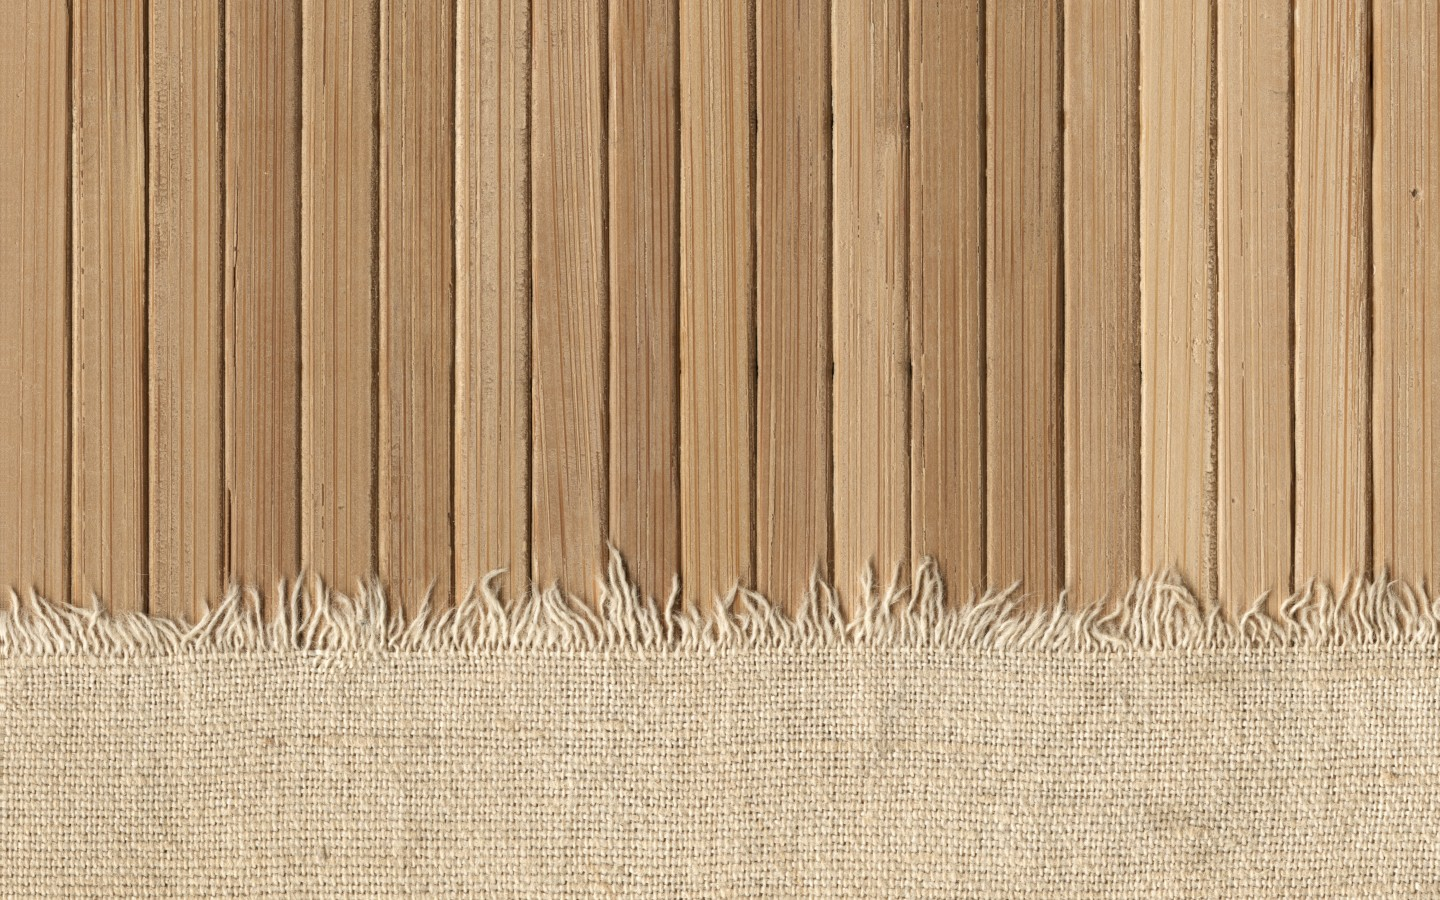 wood wallpaper and background 1440x900 id433100